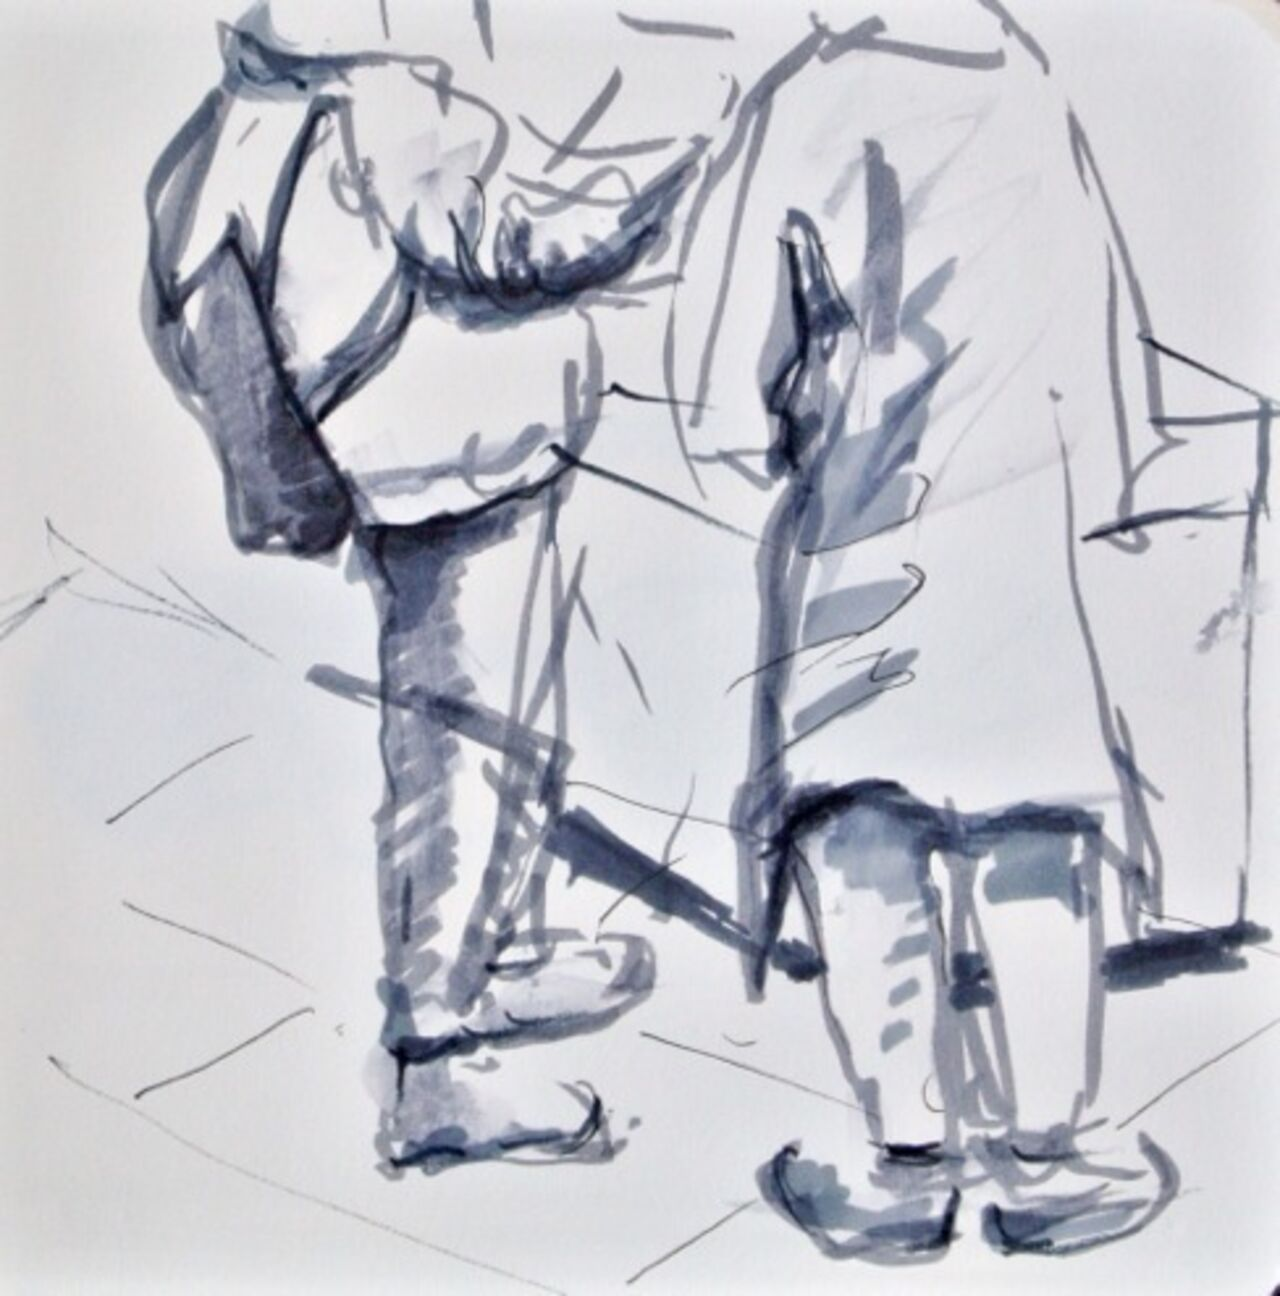 A grey sketch of two people walking side by side.